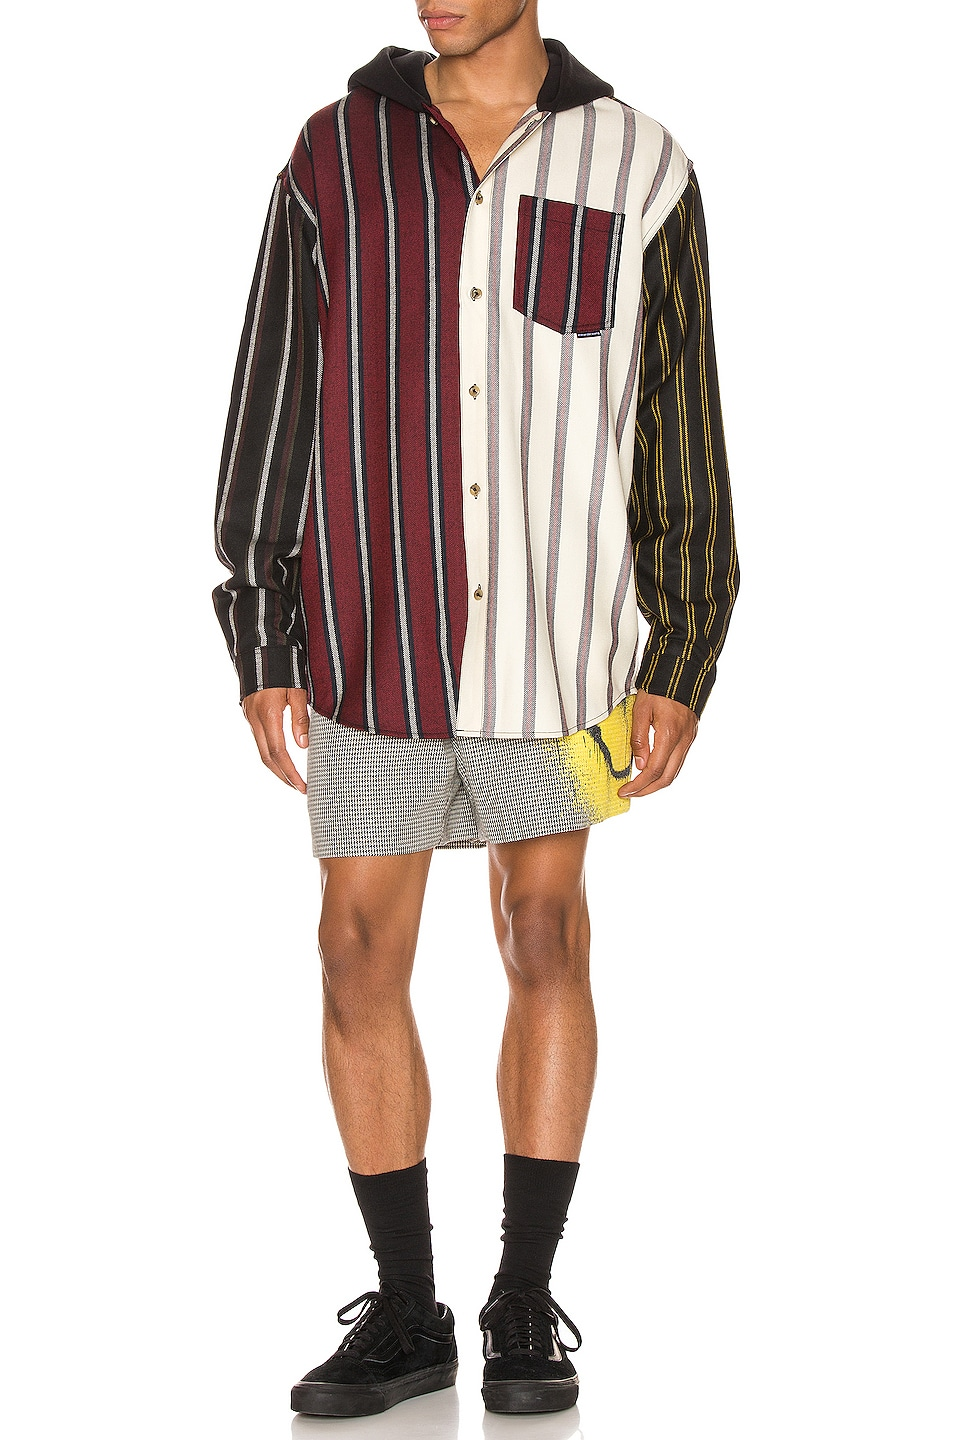 Image 5 of Alexander Wang Locharron Shirt w/ Hood in Multi Stripe